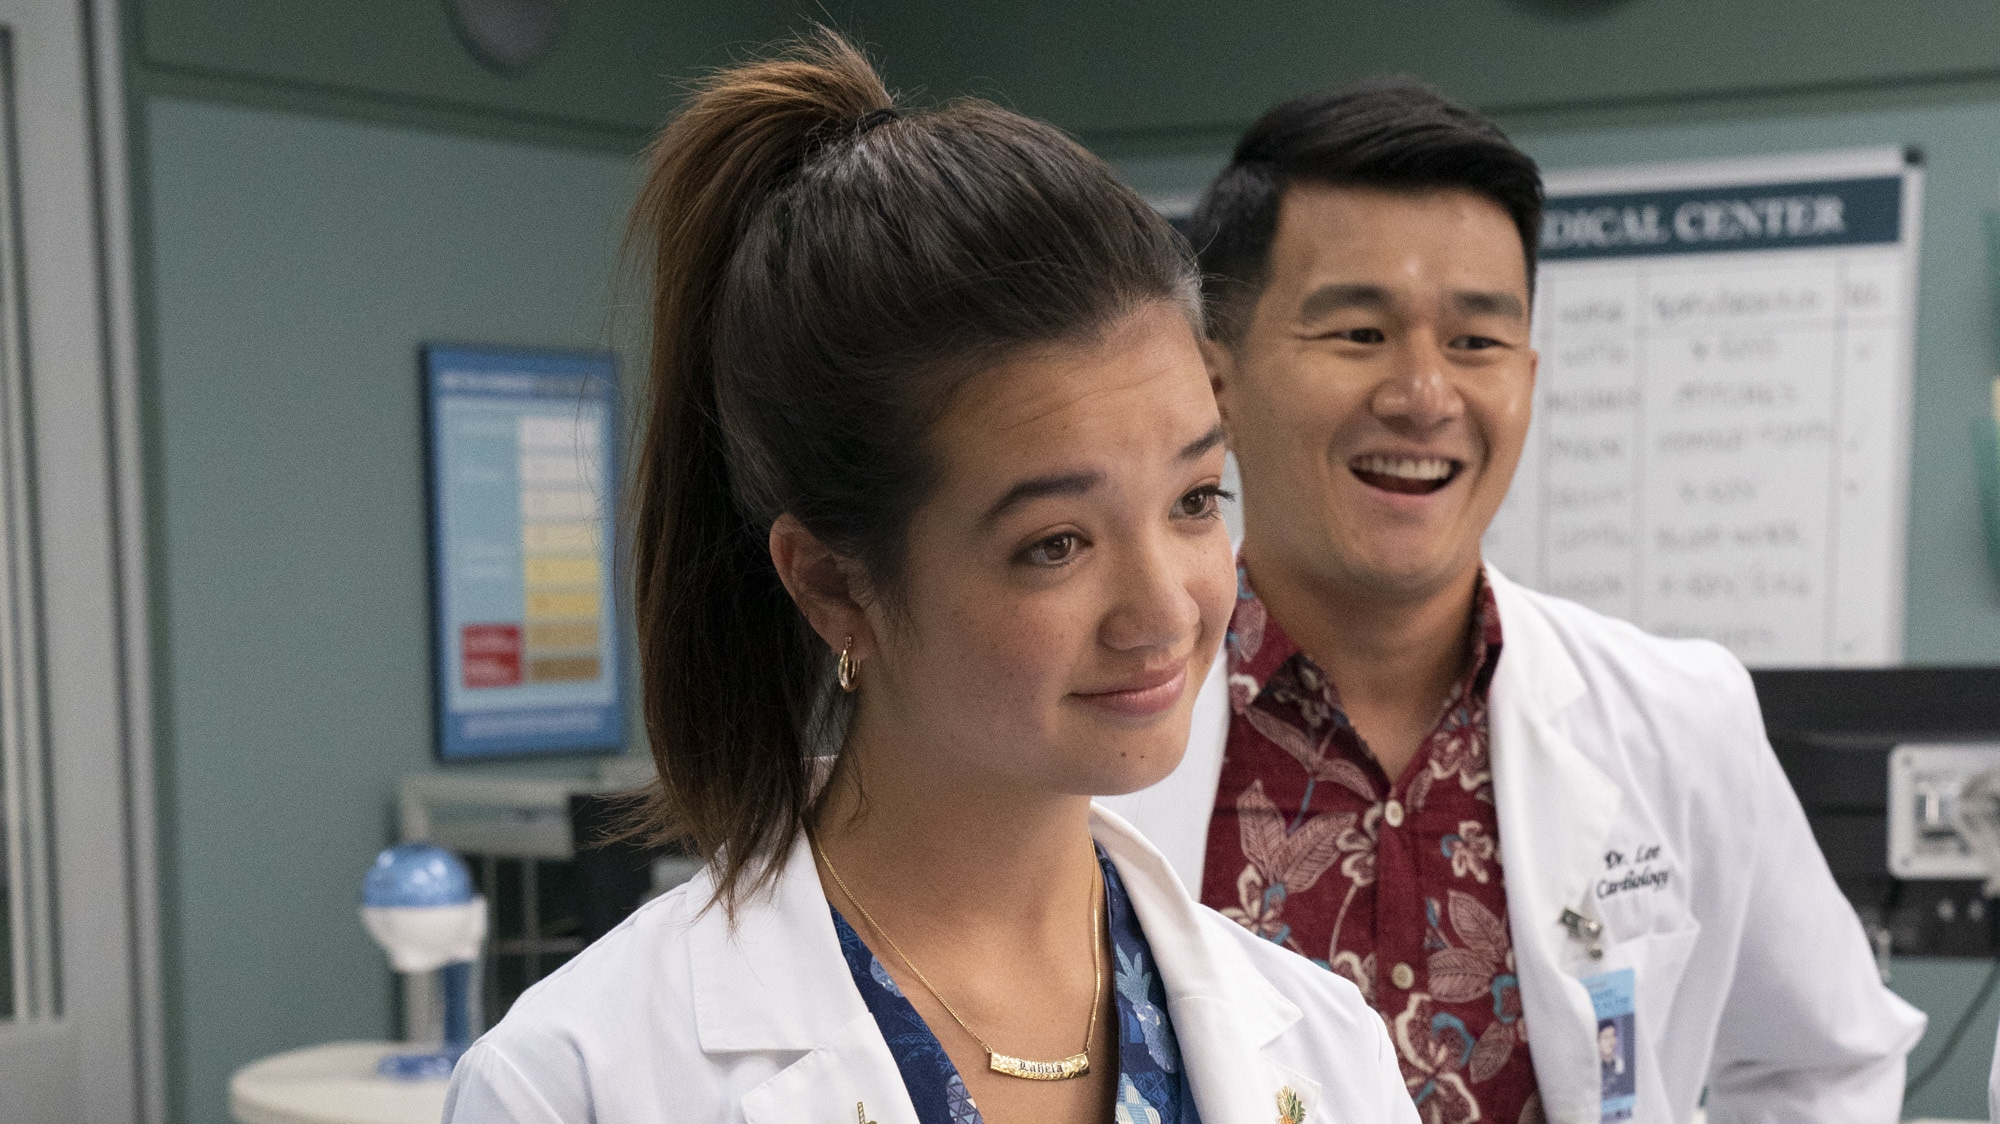 """DOOGIE KAMEALOHA, M.D. - """"Aloha - The Hello One"""" - Lahela is eager to experience some of life's firsts, but professional responsibilities interfere. (Disney/Karen Neal) PEYTON ELIZABETH LEE, RONNY CHIENG"""